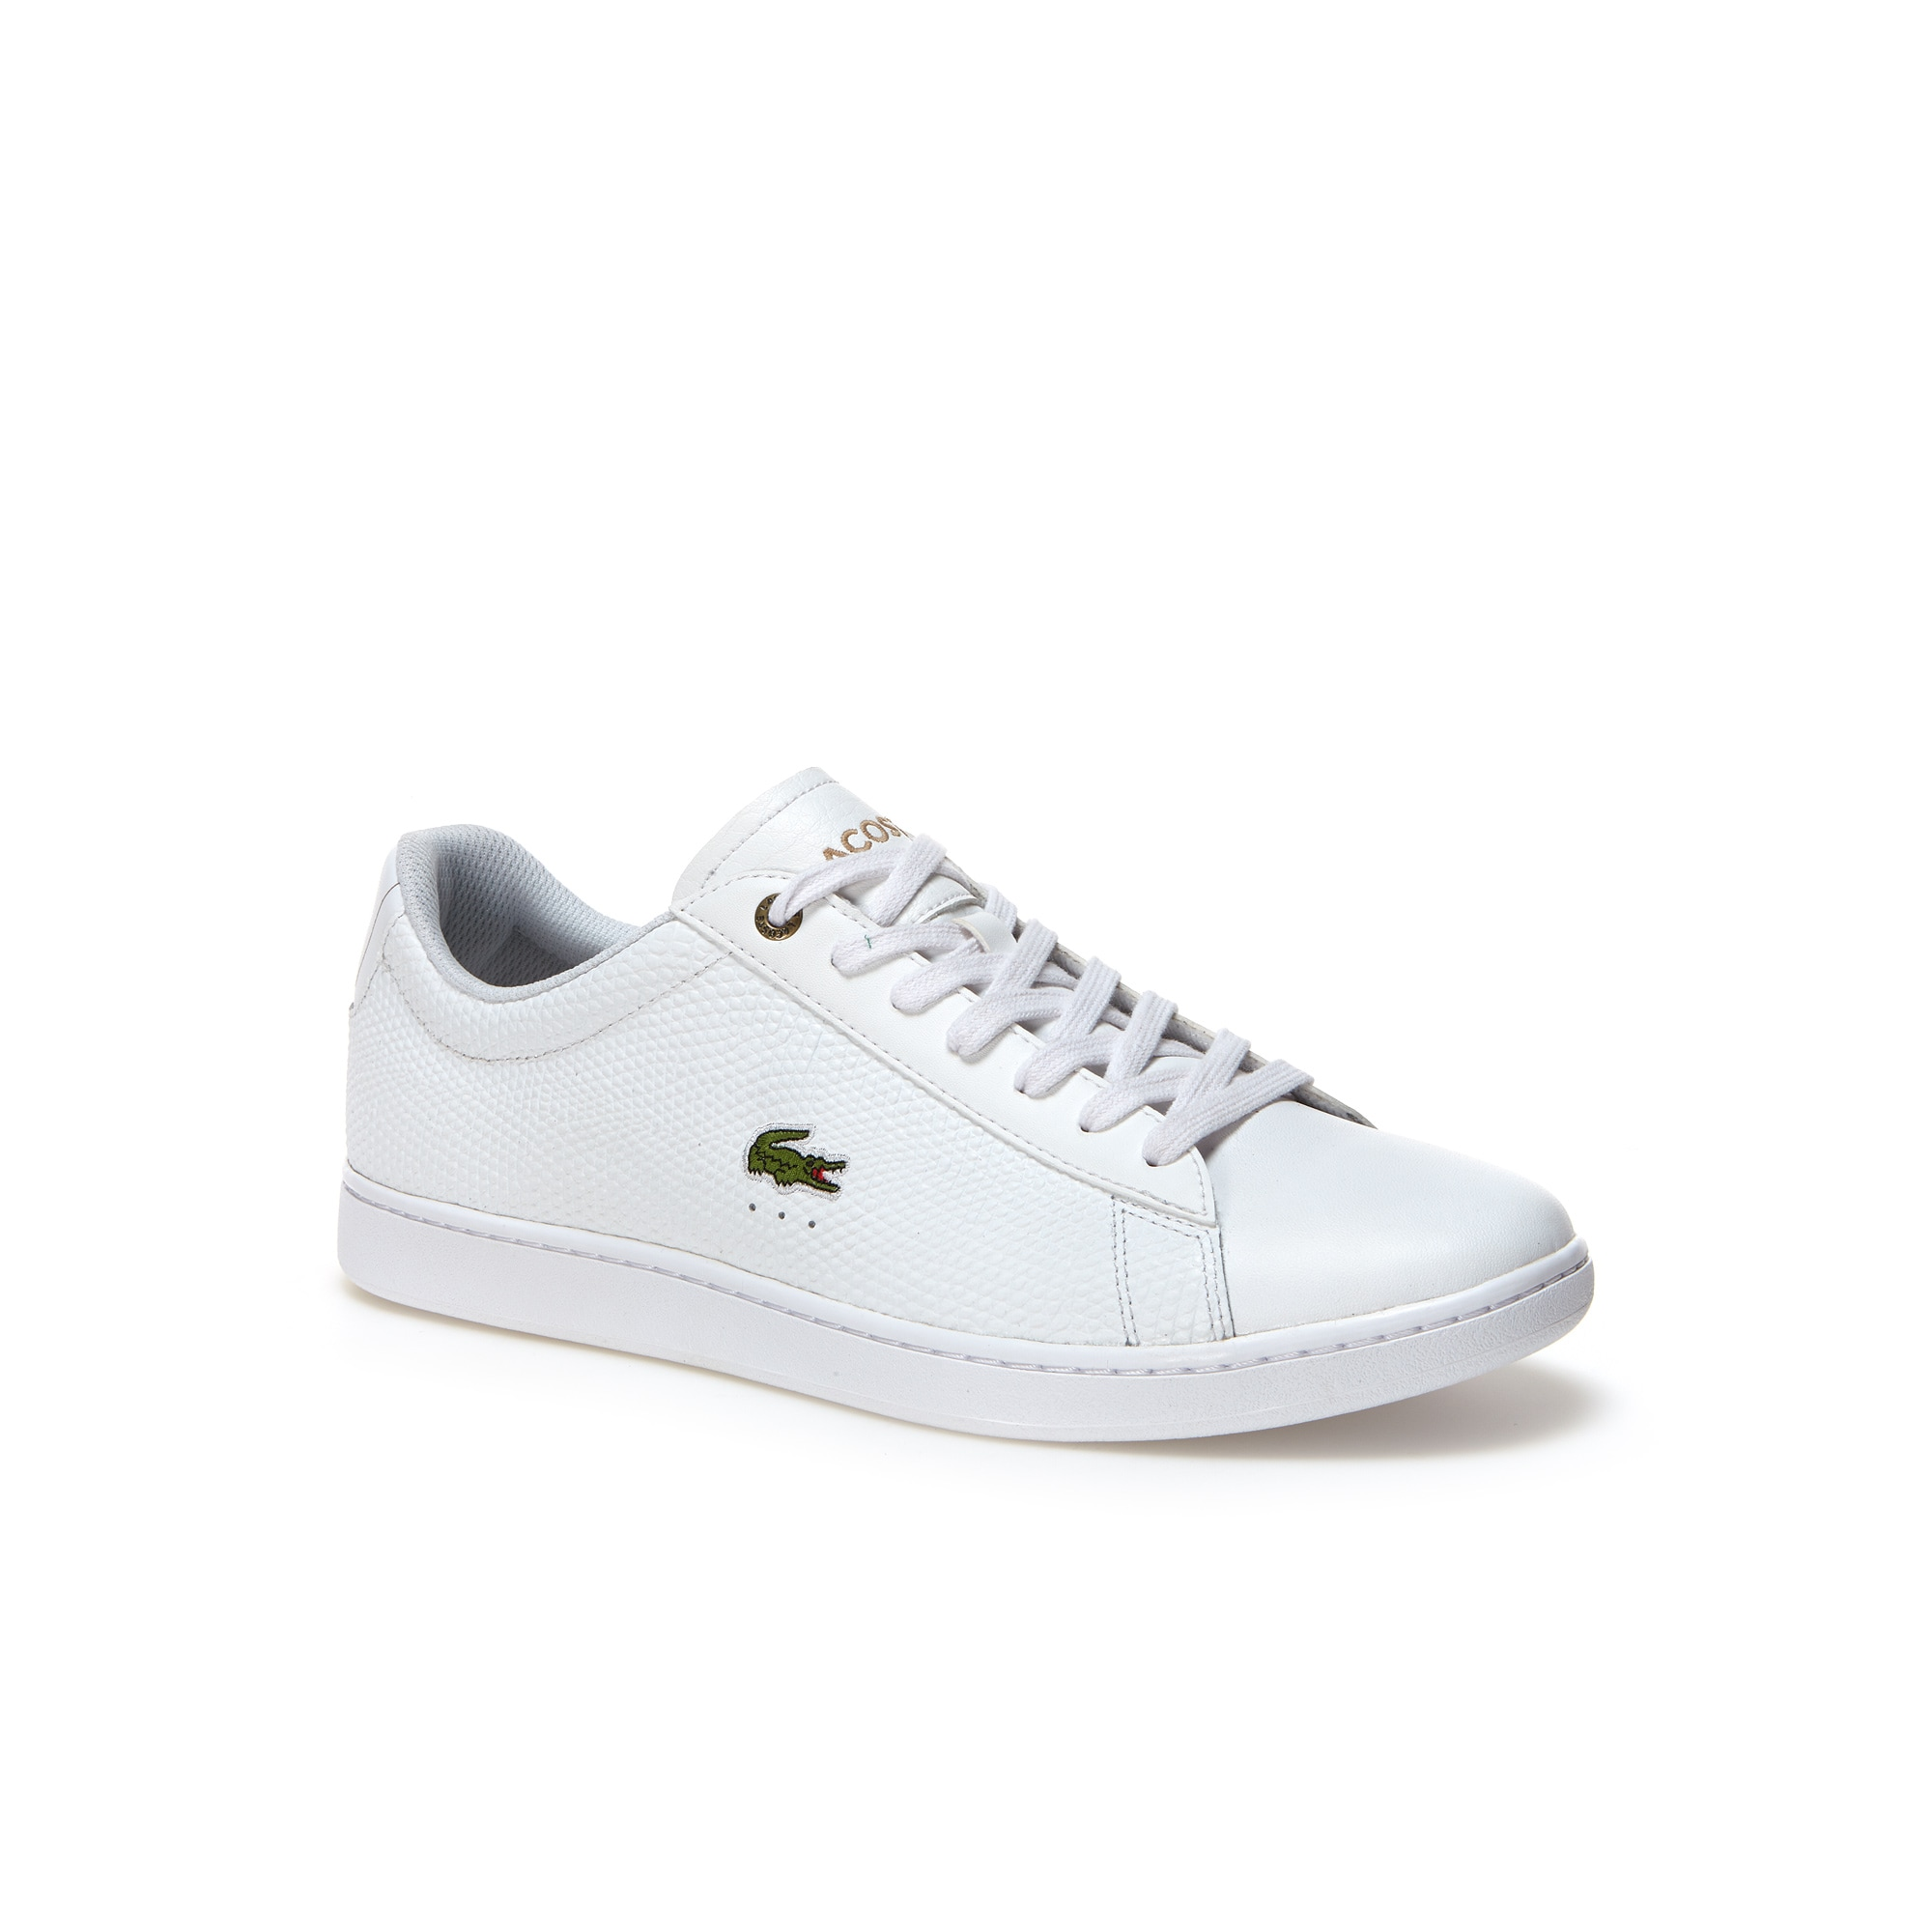 Lacoste Homme Collection Chaussures Homme Chaussures Chaussures Homme Lacoste Lacoste Homme Collection Chaussures Chaussures Collection Collection Homme Collection Lacoste 6xn6RZTwqA